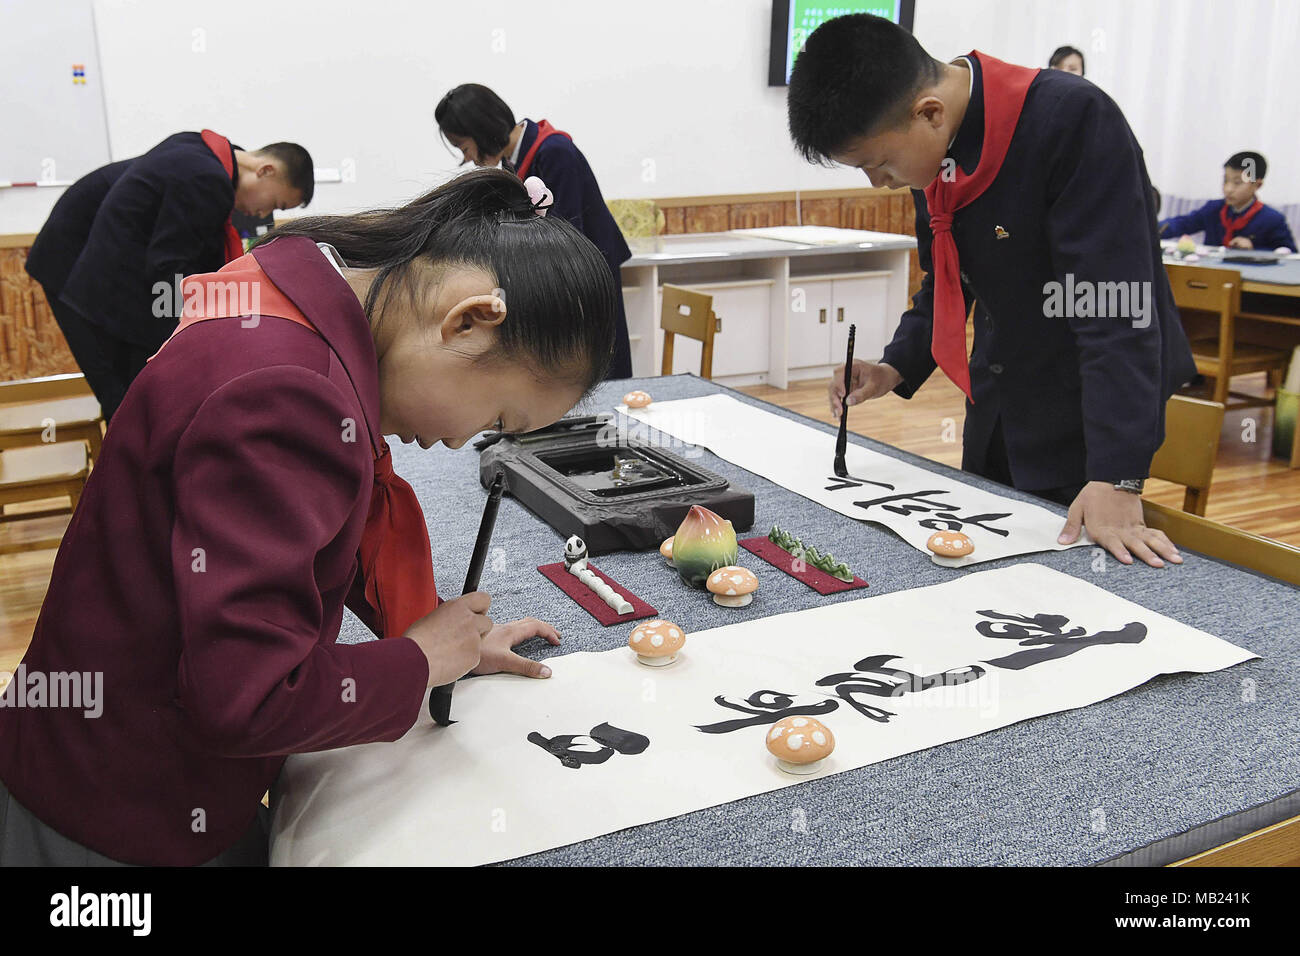 Pyeongyang, NORTH KOREA. 3rd Apr, 2018. March 3, 2018-Pyeongyang, North Korea-North Korean students at Mankyeongdae Boys ' Palace are taking Calligraphy classes. The date approaches, for better or worse. On April 27, the leaders from the two Koreas, technically still at war, will hold a summit at the border. The parties met today to work out security details. To hold talks with South Korean president Moon Jae-in, the leader of North Korea, Kim Jong-un, will take unprecedented steps for a man in his position literally. The summit will be held south of the military demarcation line in the truc Stock Photo